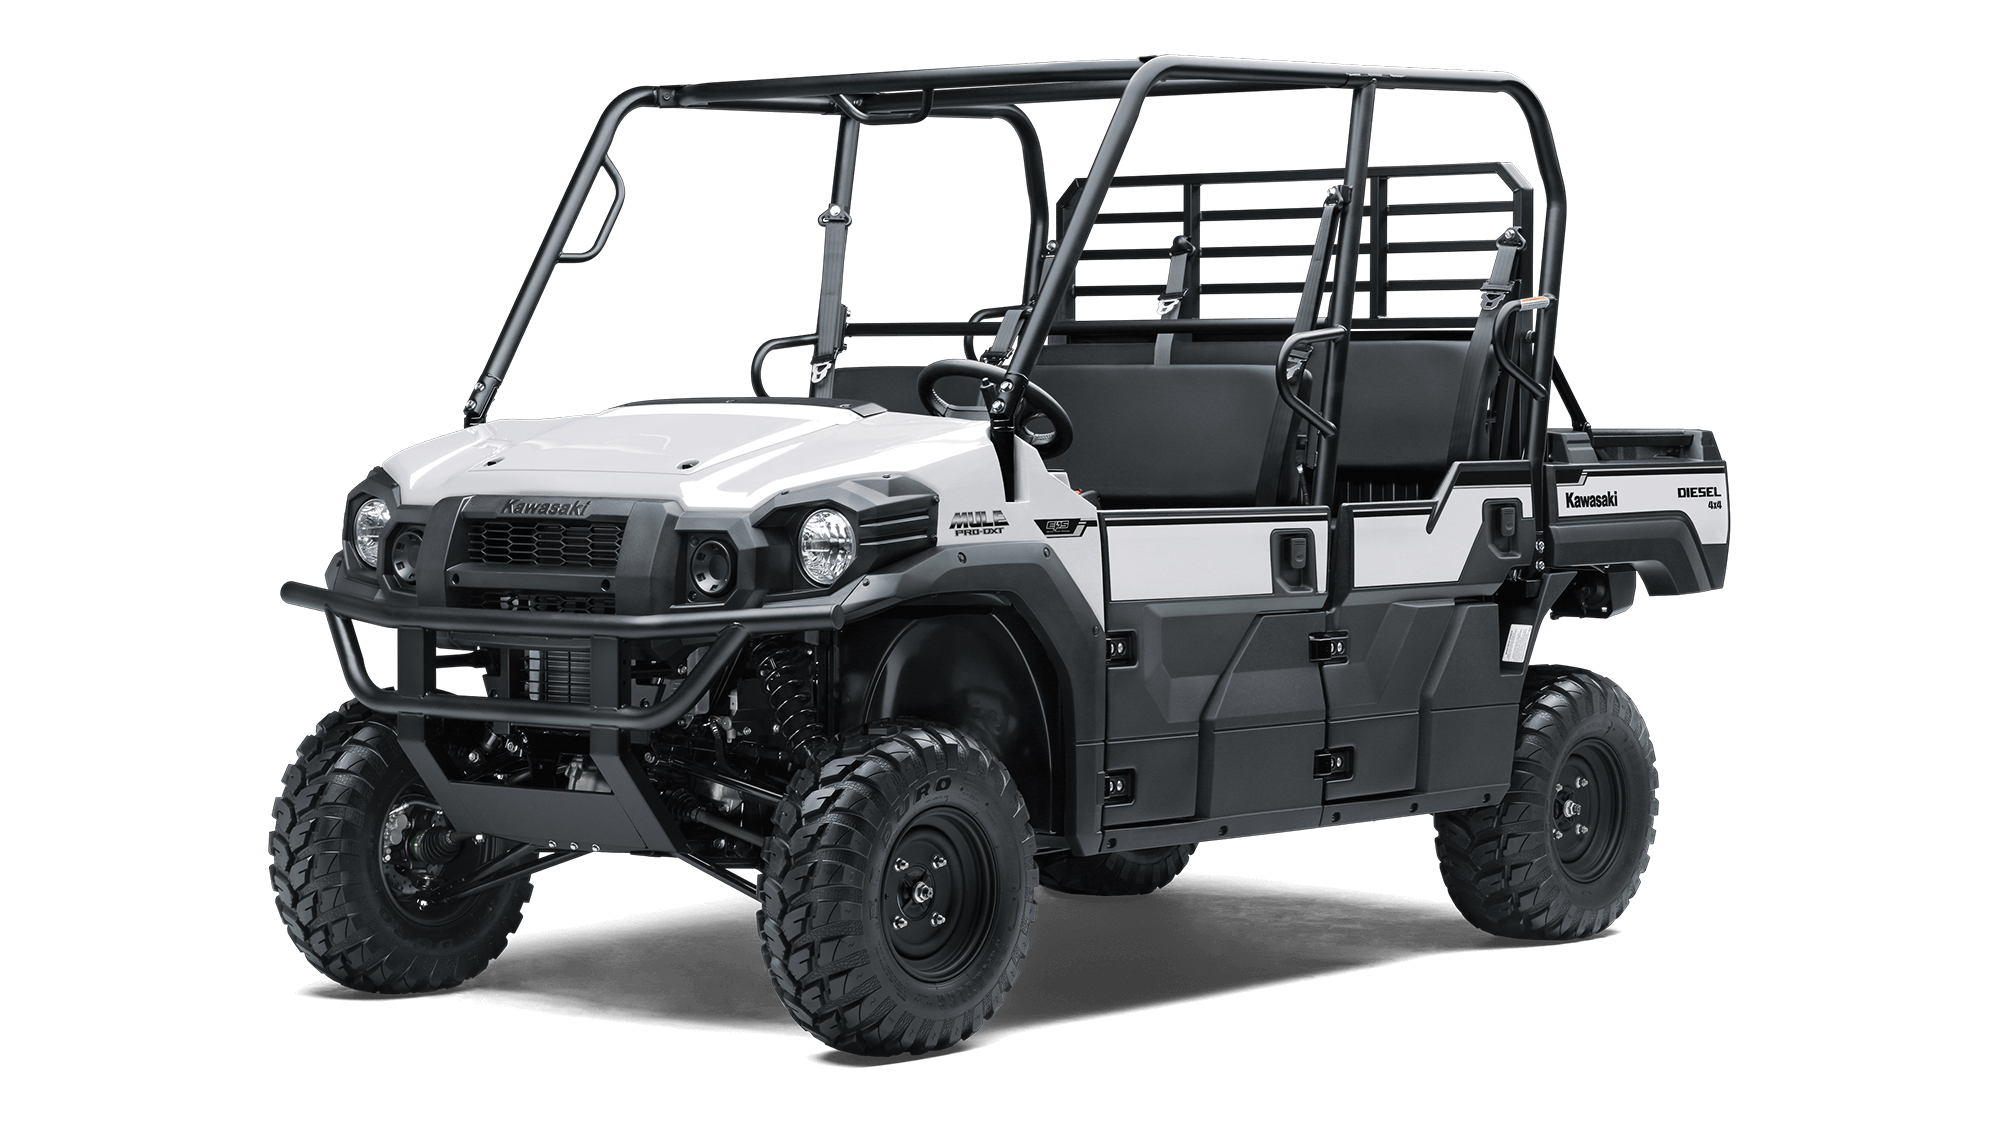 Kawasaki Mule 1000 Engine Parts Diagram Not Lossing Wiring Pro 2019 Dxt Eps Diesel Side X By Rh Com 3010 Lookup Electrical Schematic